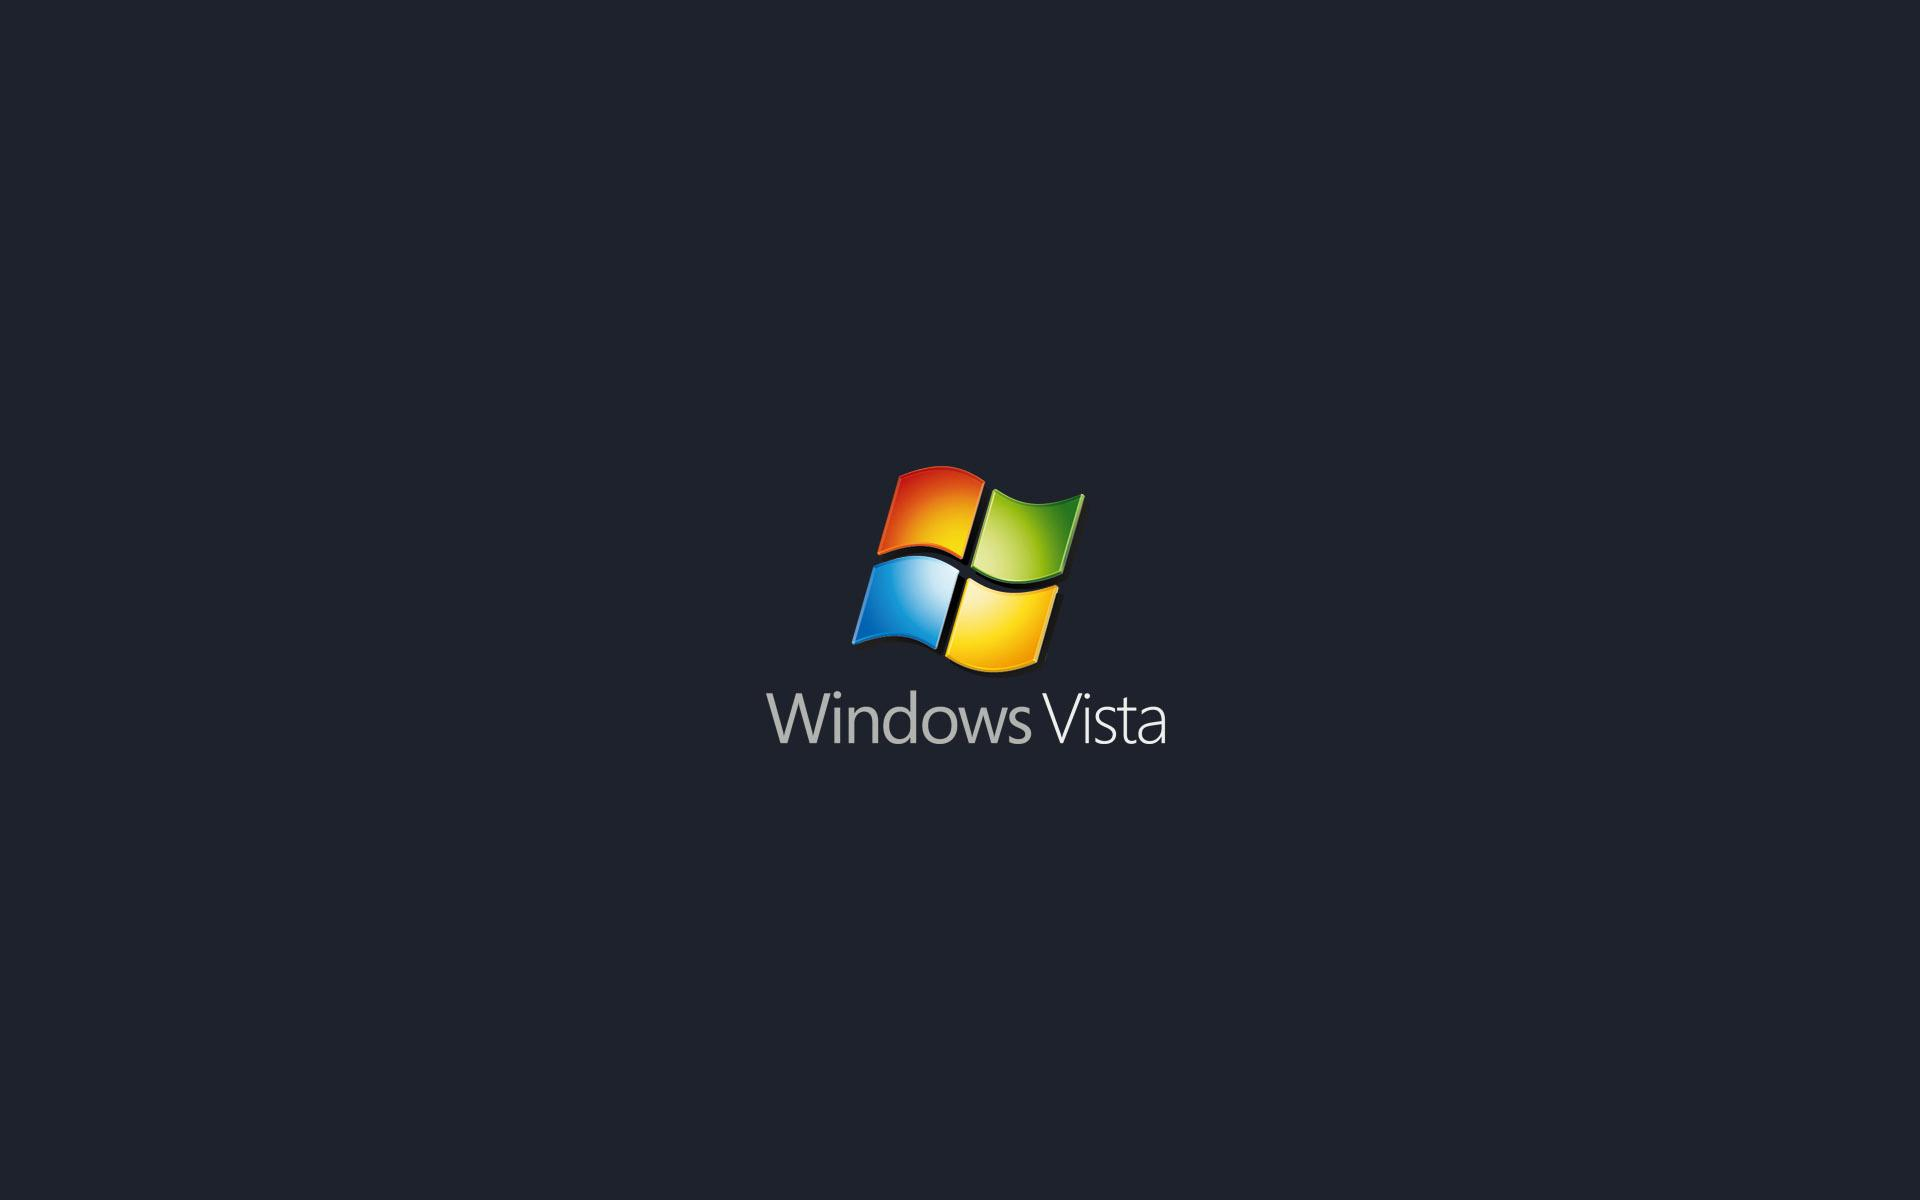 Обои Windows Vista (13) 1920x1200